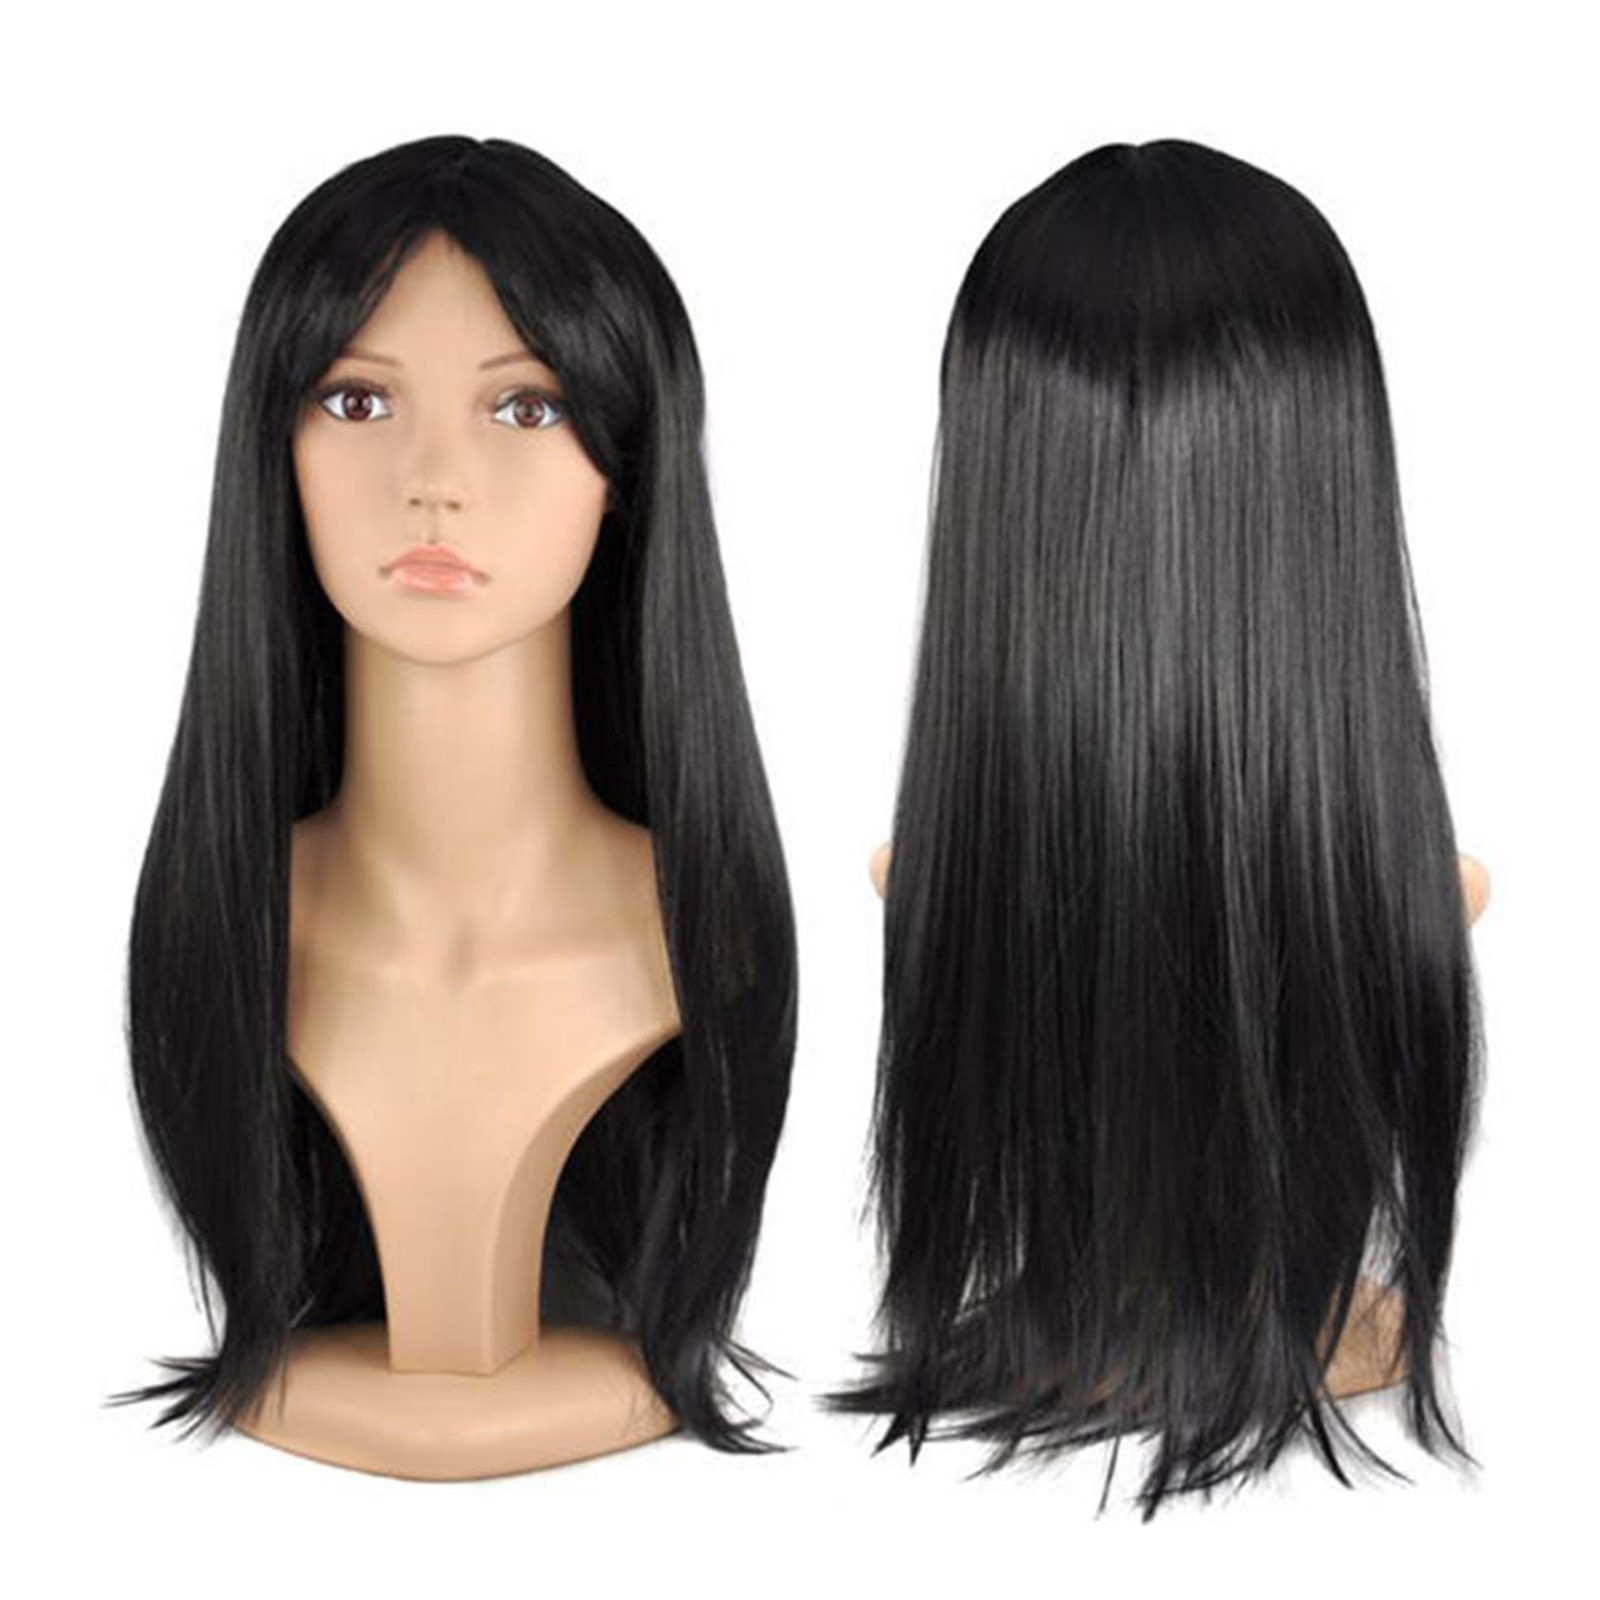 "WOMENS LADIES LONG 19"" STRAIGHT WIG FANCY DRESS COSPLAY WIGS POP ..."